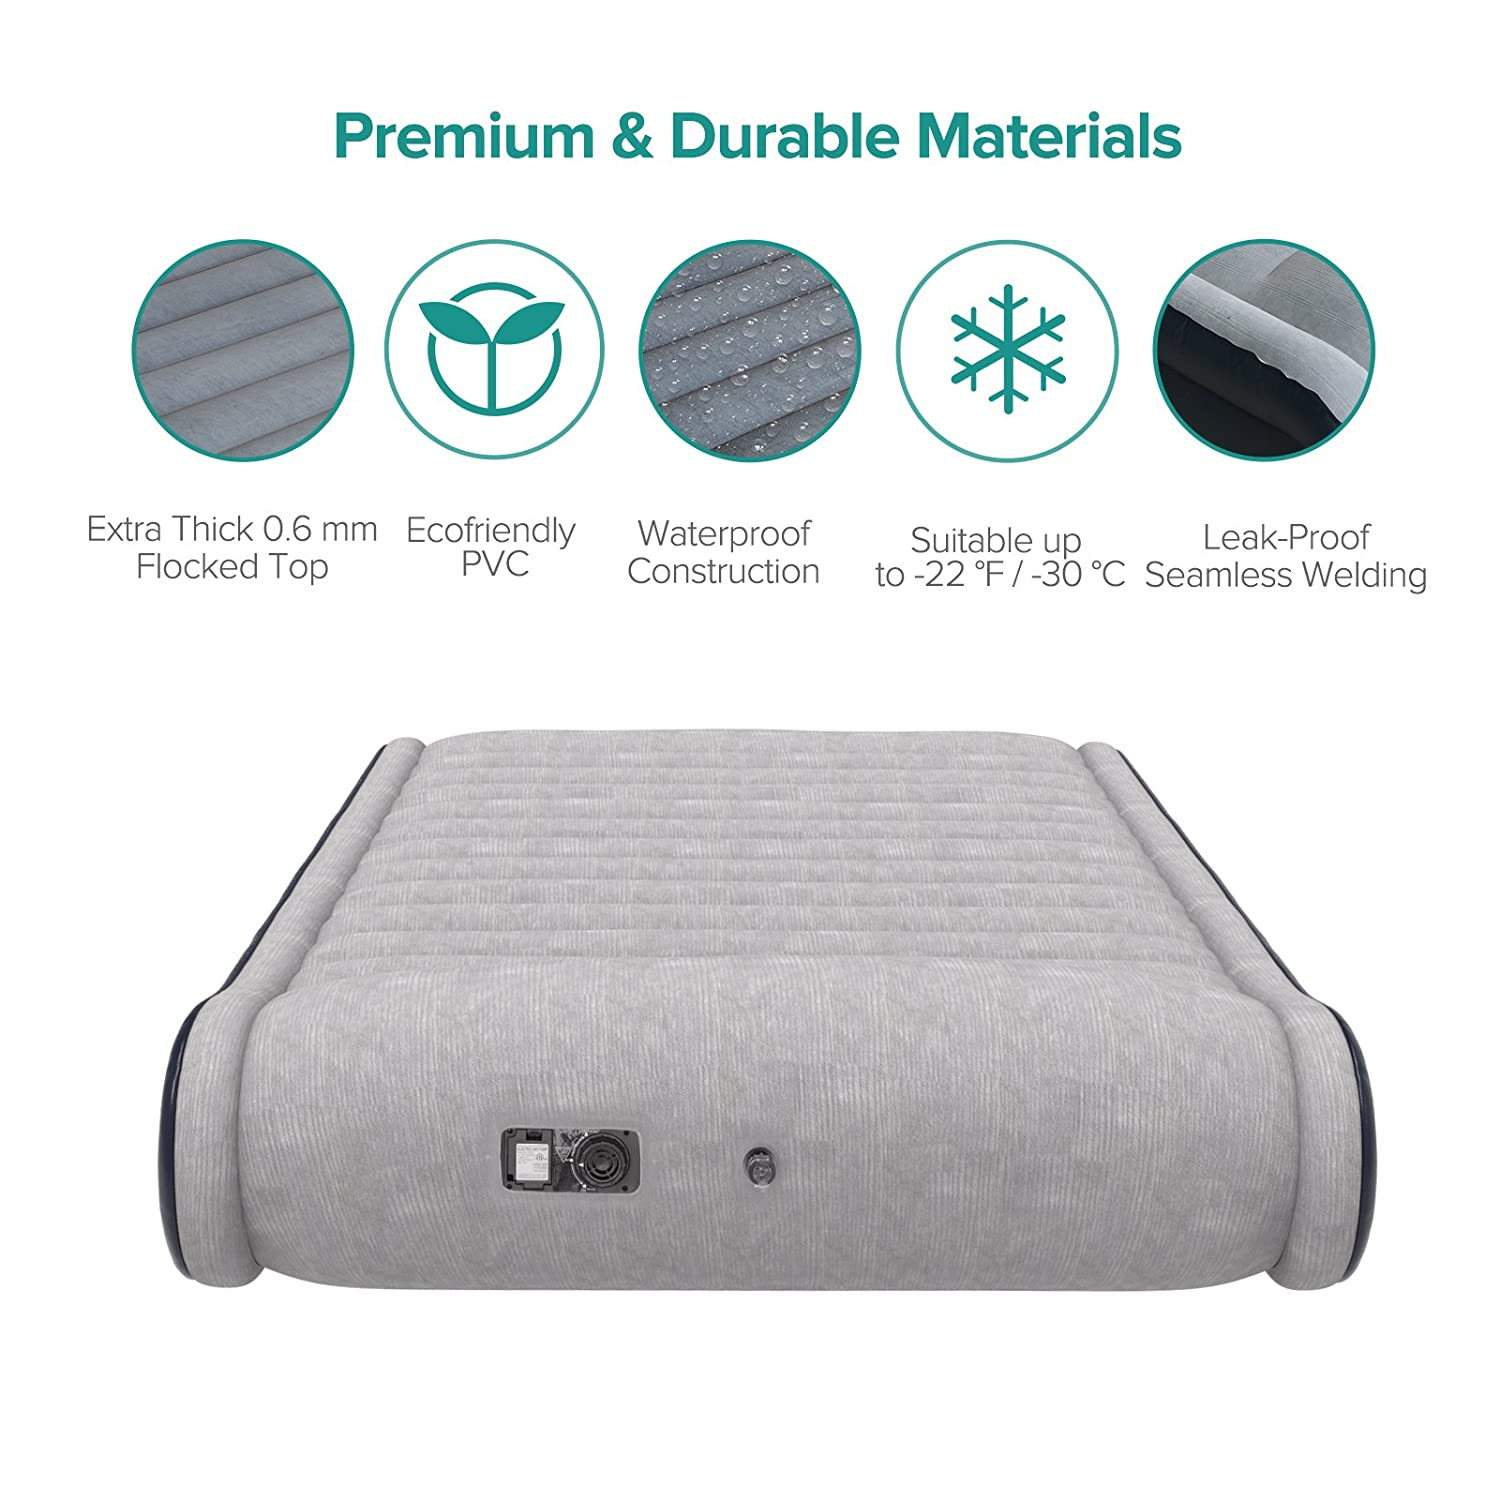 The 5 Best Air Mattresses for Children In 2021: Reviews & Buying Guide 8